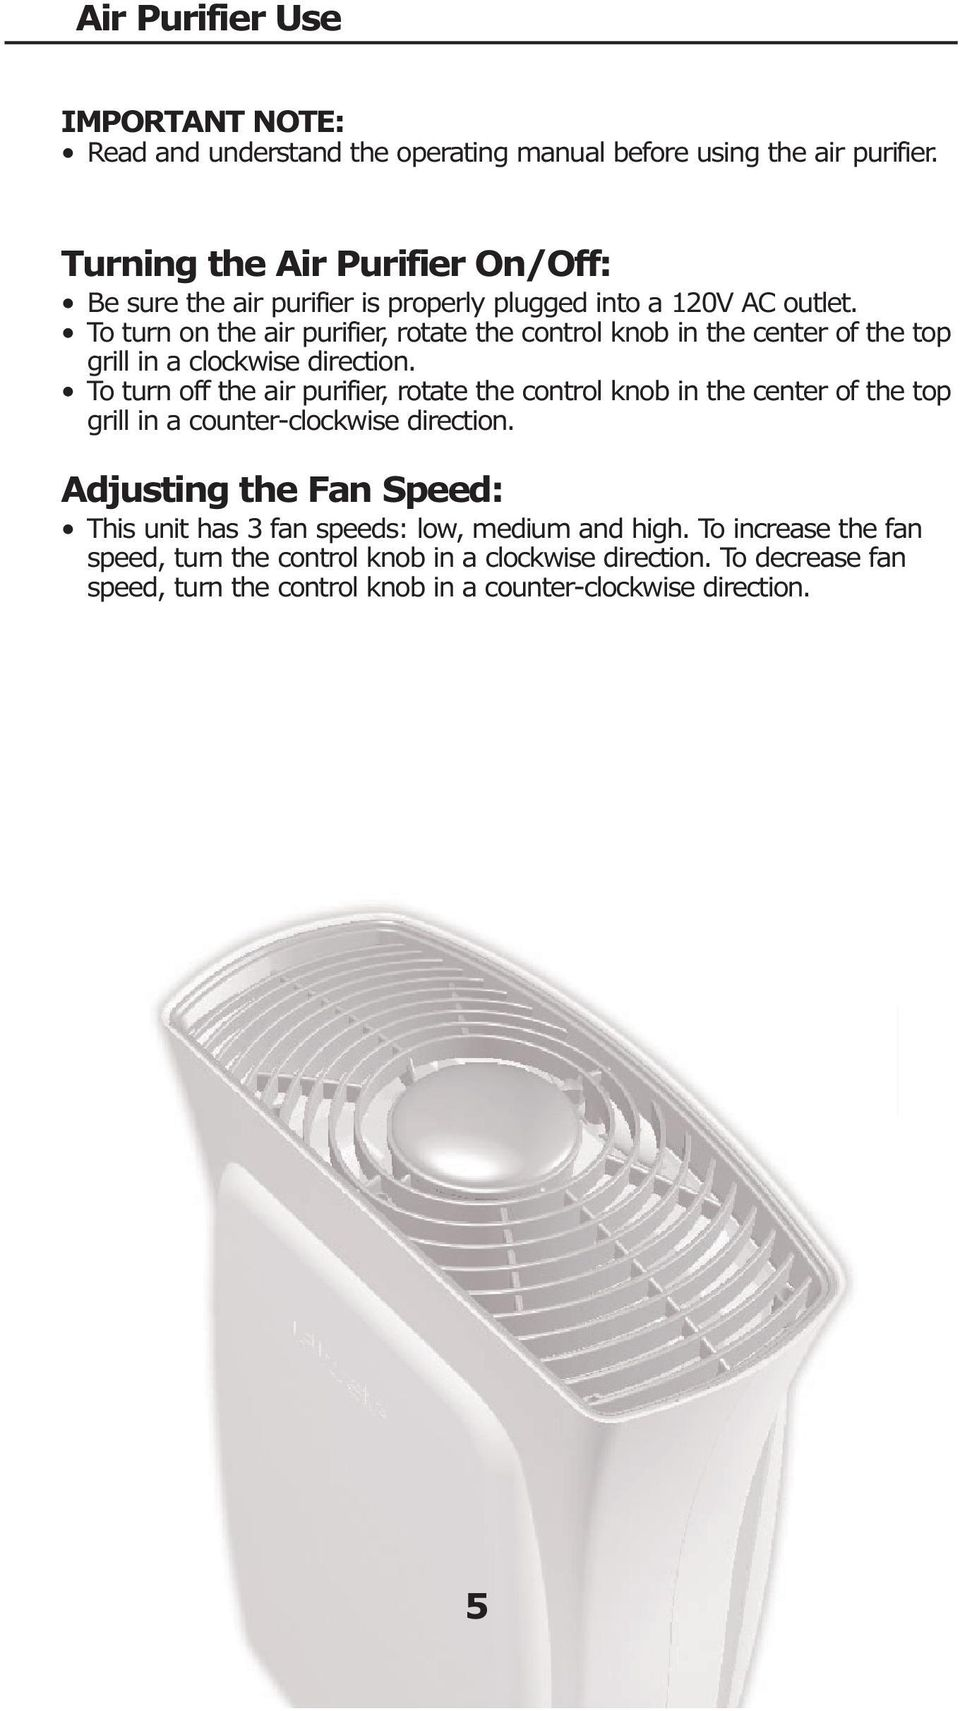 To turn on the air purifier, rotate the control knob in the center of the top grill in a clockwise direction.